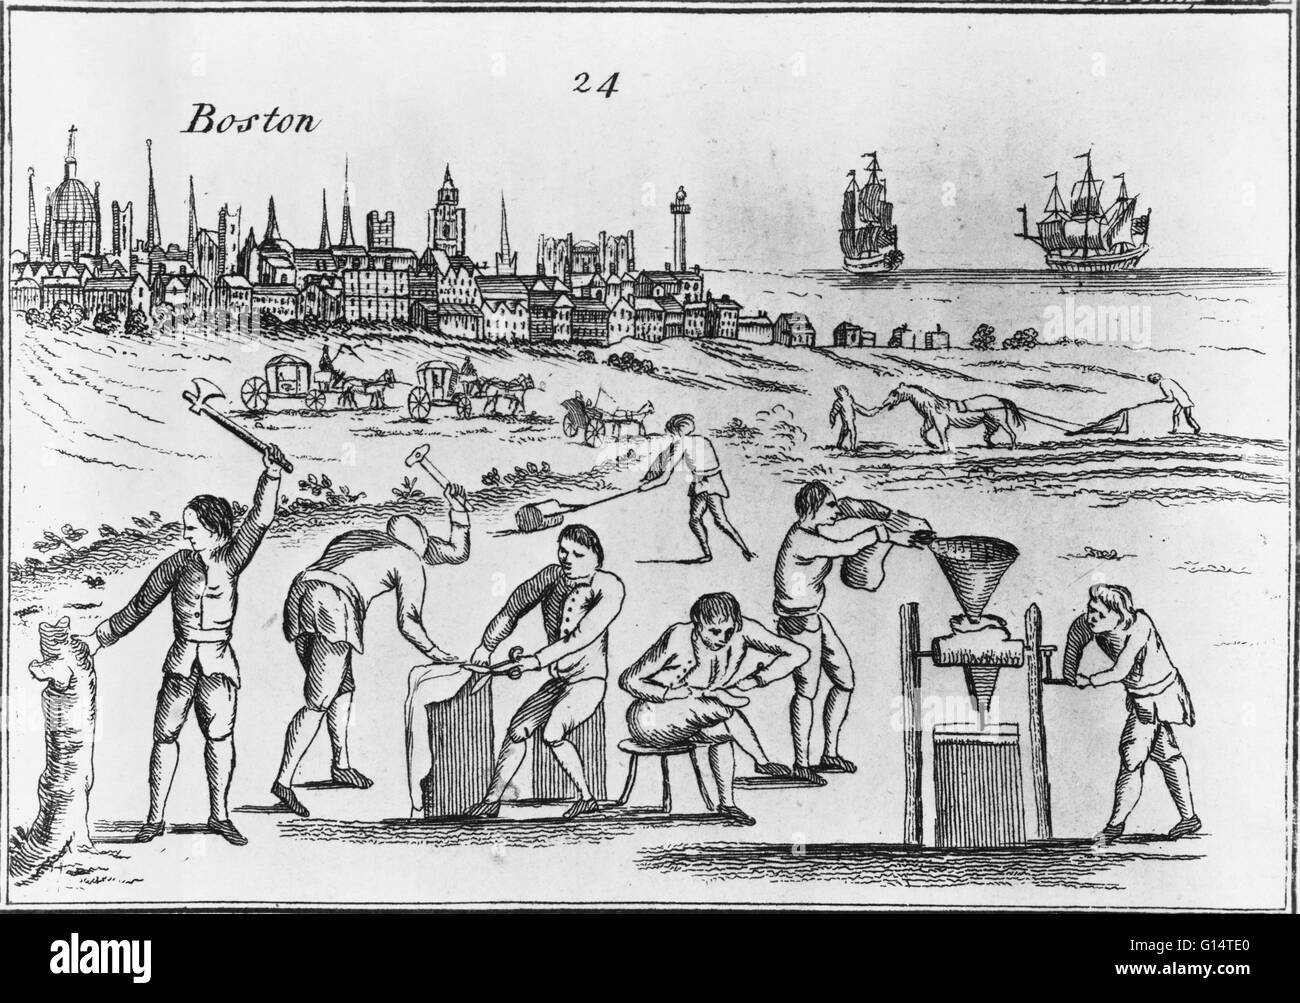 'Political electricity; or, an historical & prophetical print in the year 1770,' an engraving from a - Stock Image